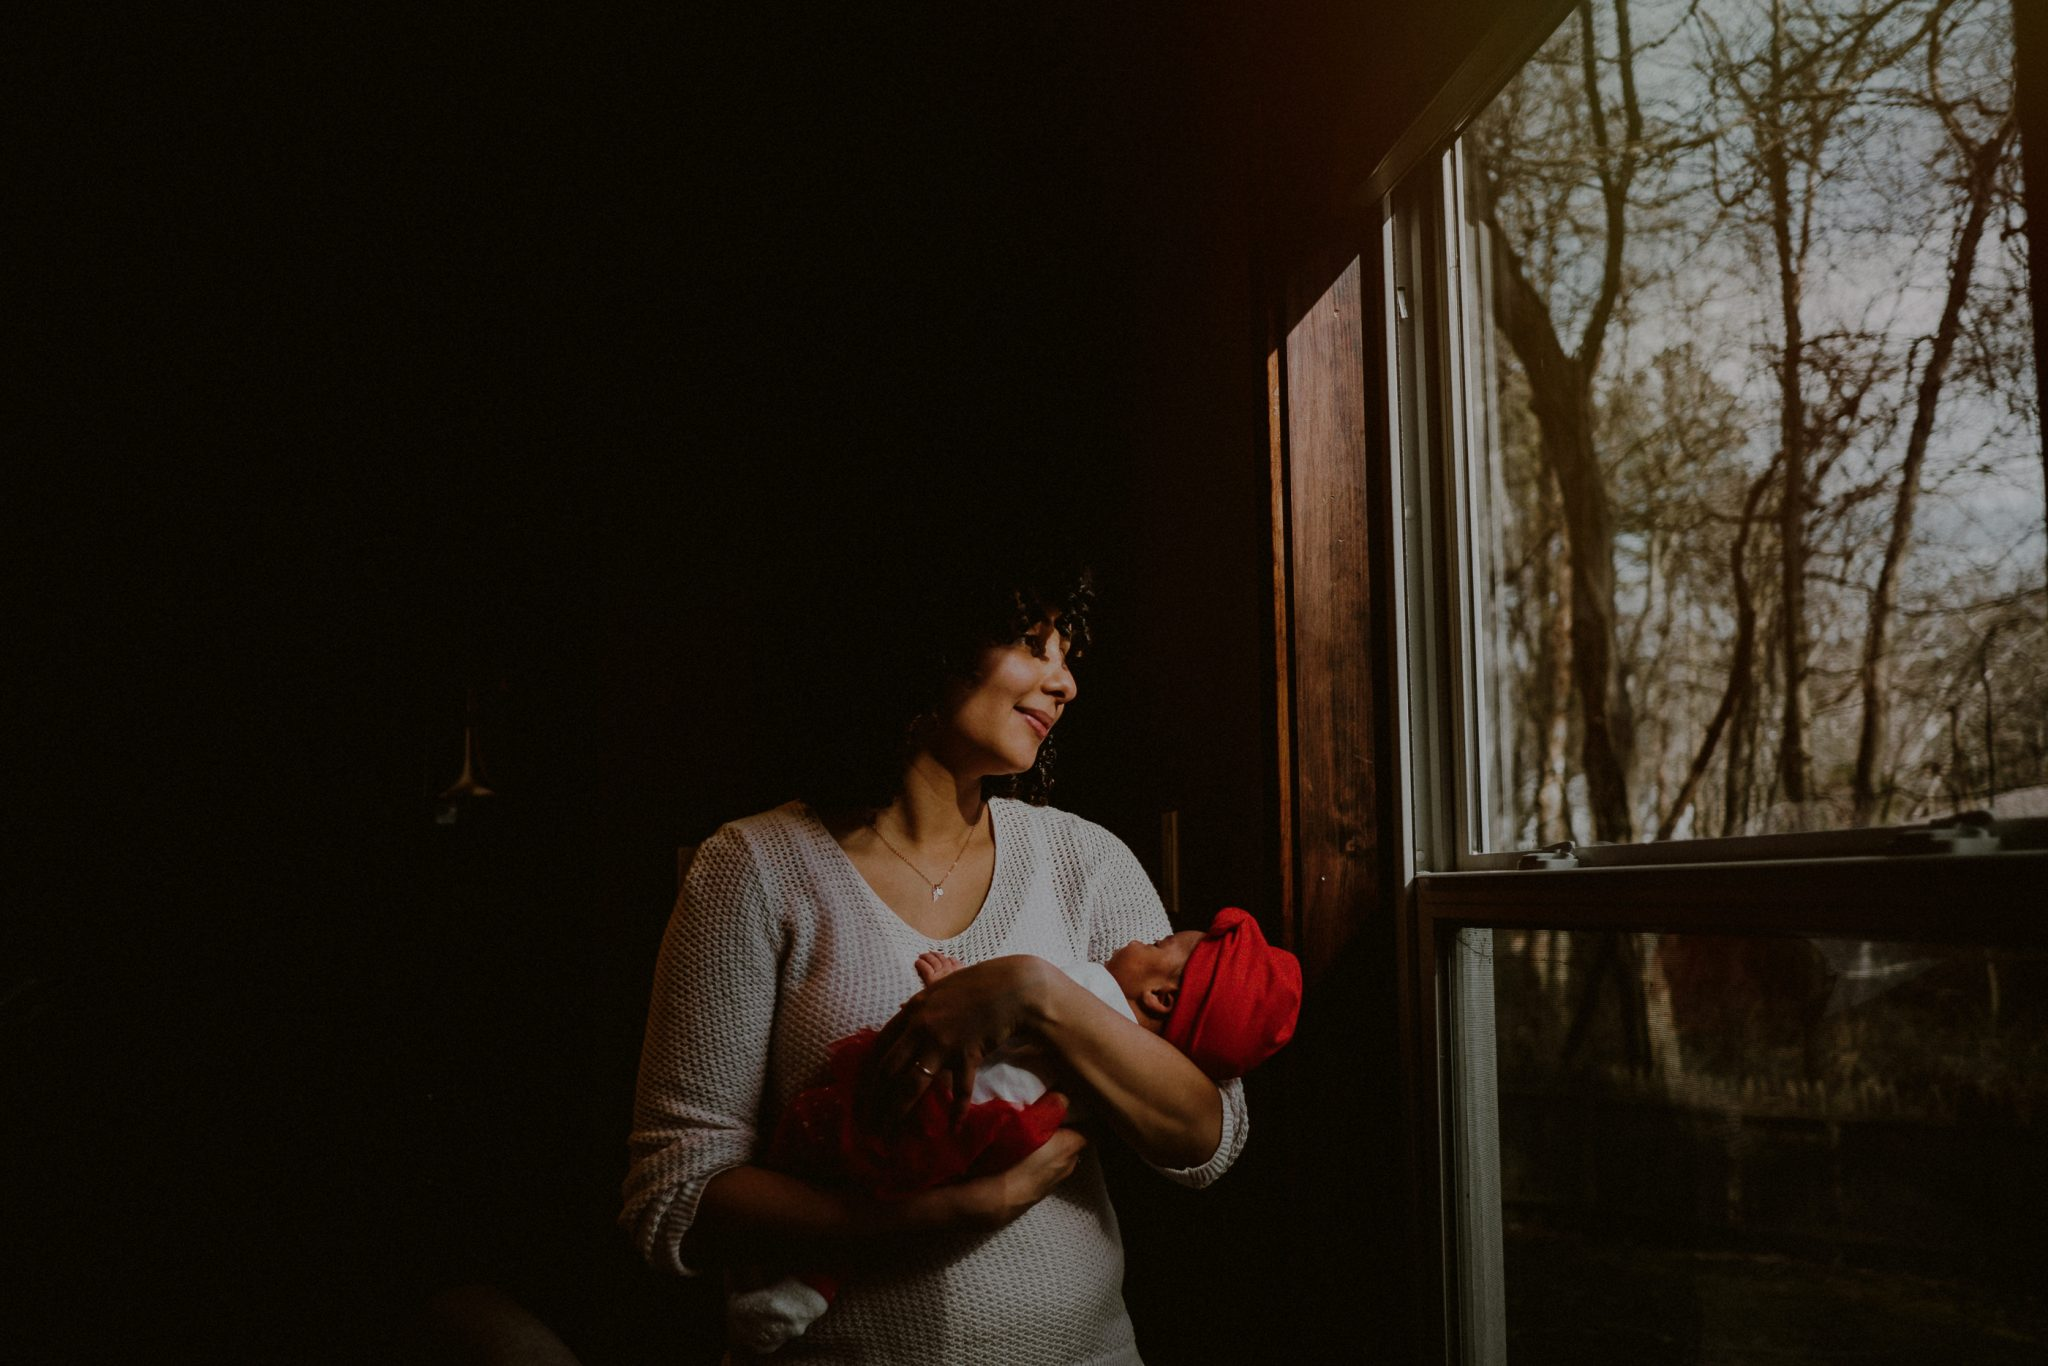 mother looking out window holding baby